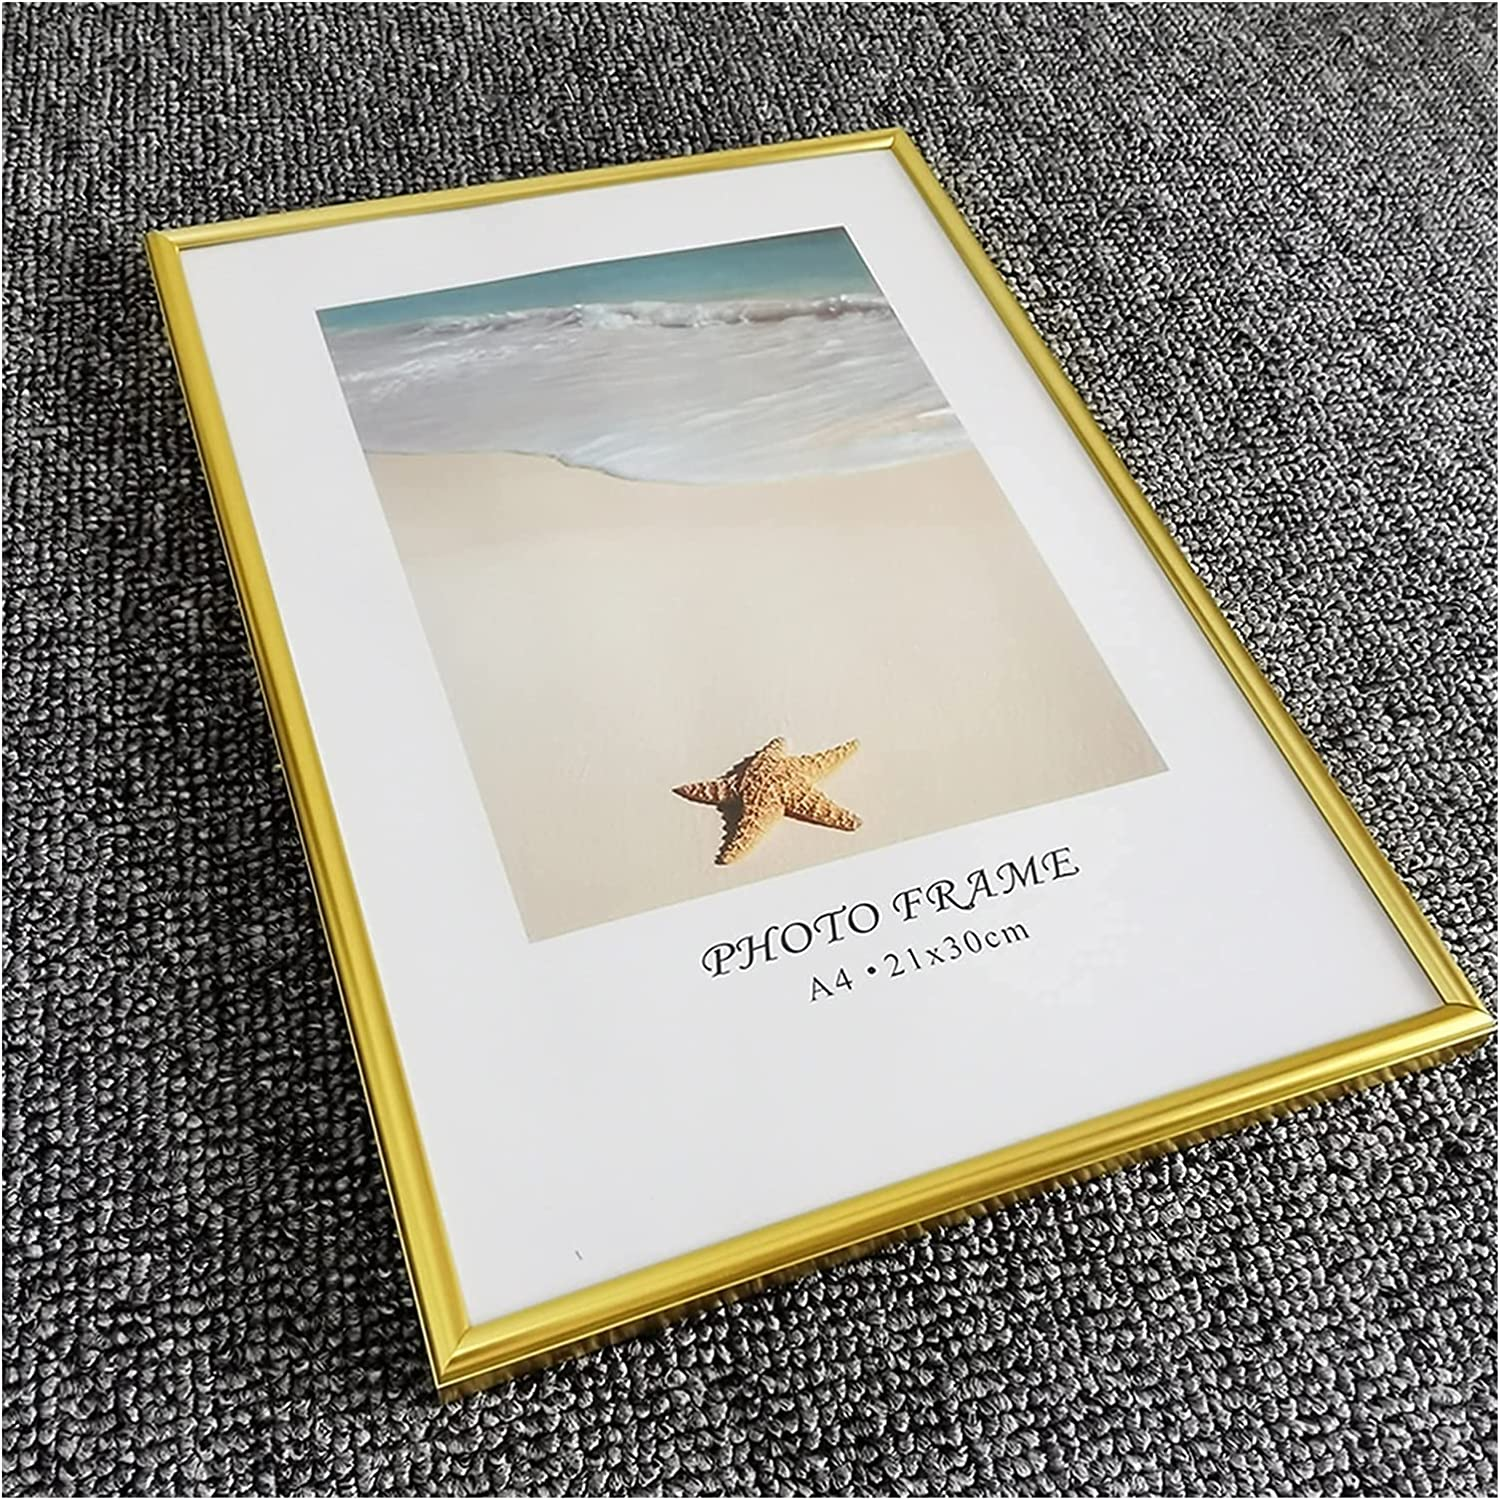 Low price YQHLHT Photo Ranking integrated 1st place Frame Classic Frames Pictures Aluminum